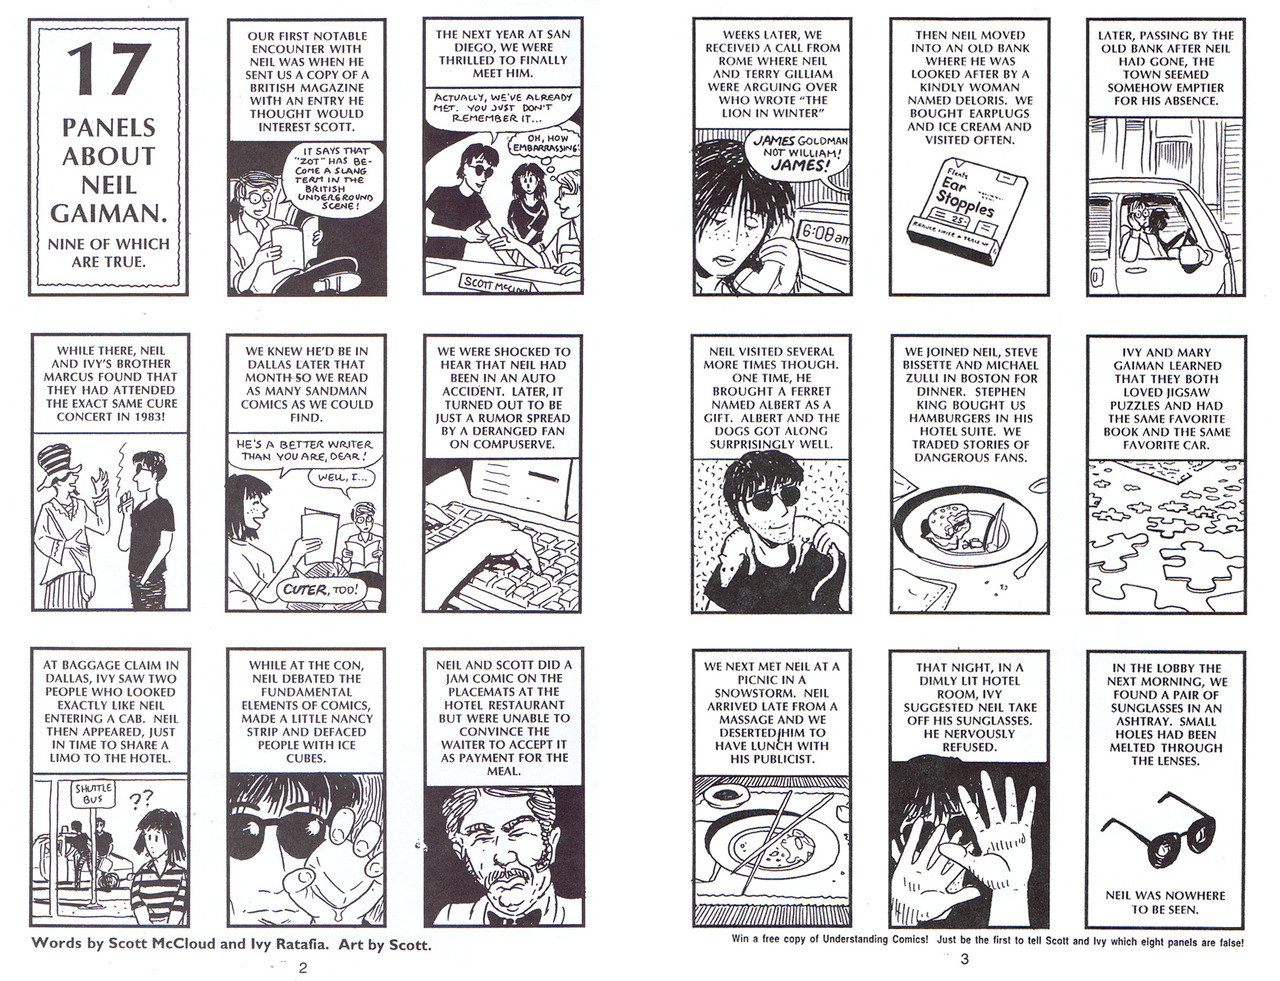 scott mccloud understanding comics essay Mccloud emphasizes that the definition excludes: prohibition of any materials or tools limitations of genre, subject matter, or style presumably, then, a haiga sequence could be a comics a single image, which he says is a cartoon but not a comics.